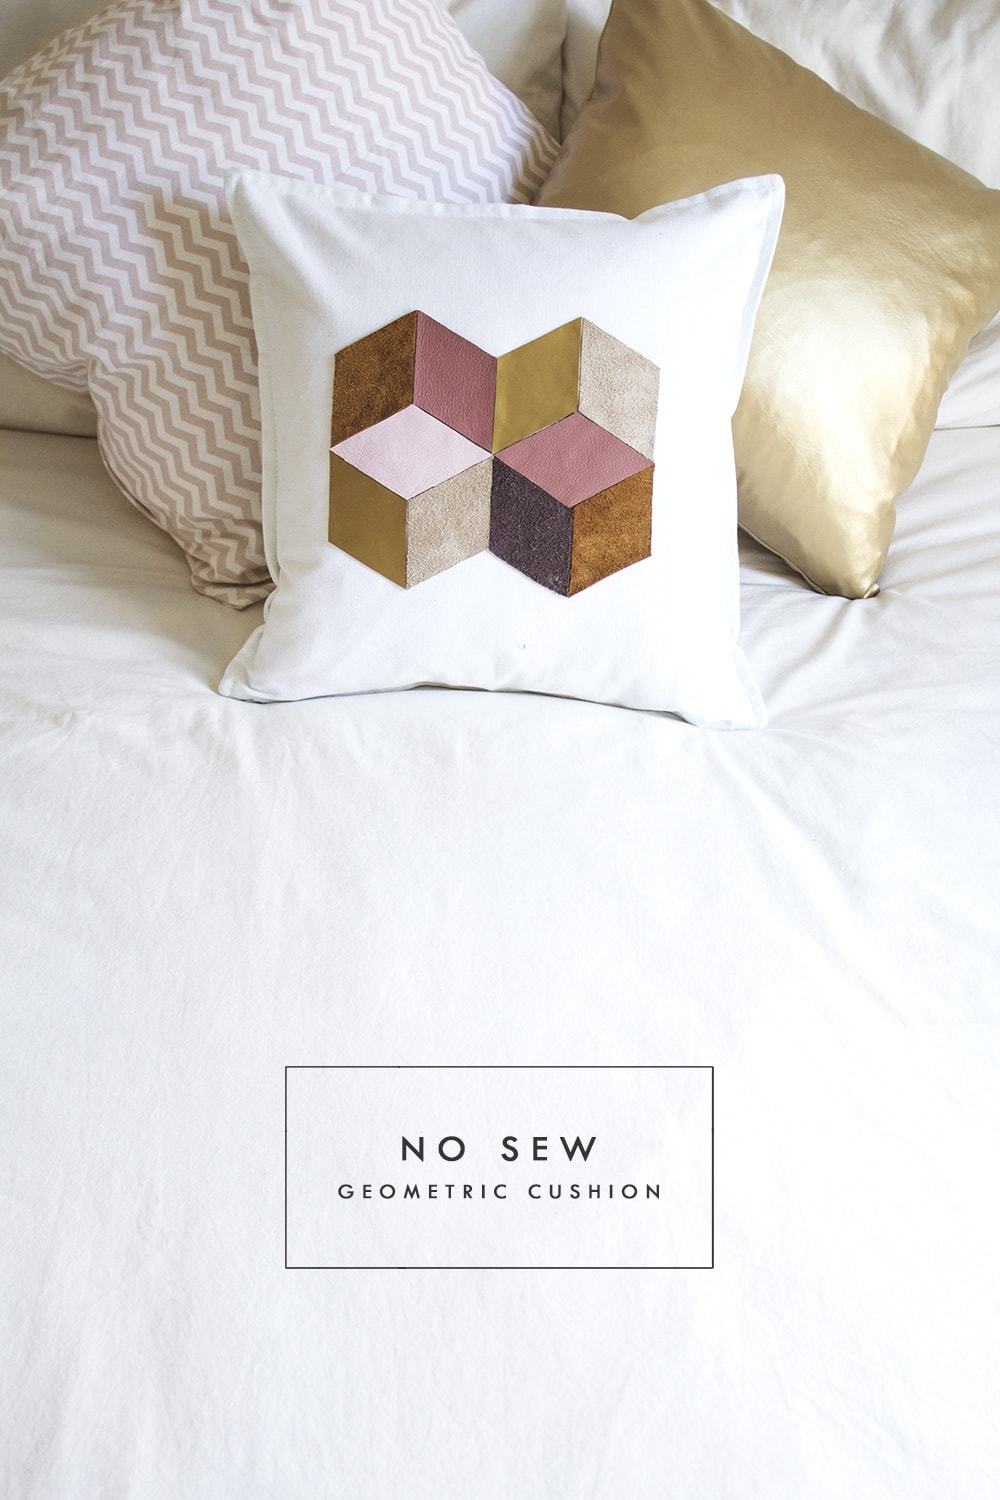 DIY geometric cushion 1